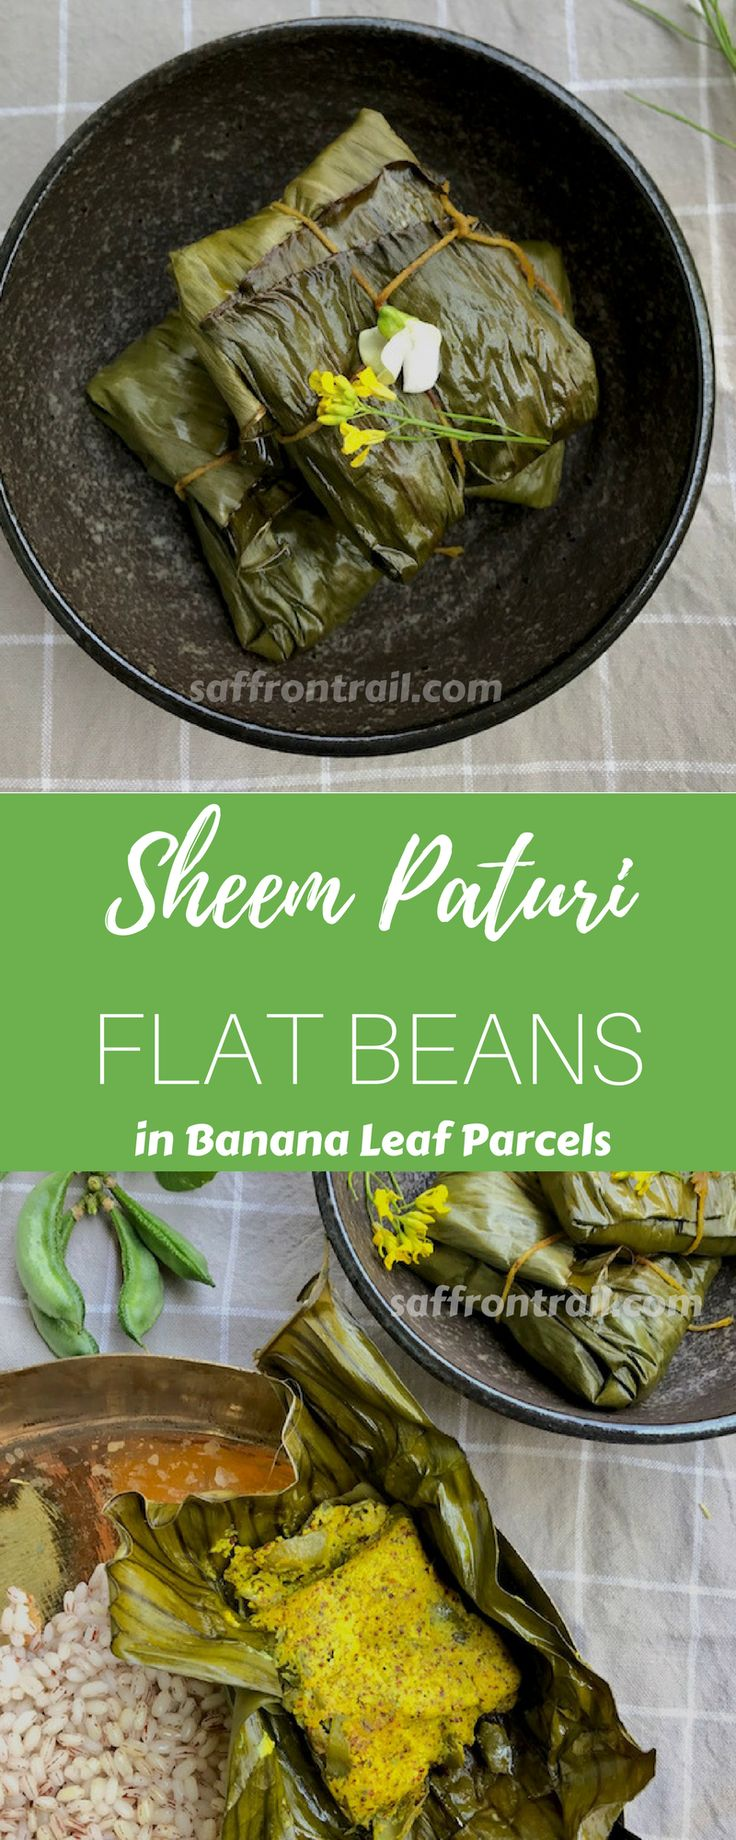 Sheem Paturi is an exotic vegetarian dish from the kitchens of Bengal, in which Sem or flat beans, smothered in a freshly ground mustard and chill paste, is steam cooked in banana leaf parcels. Sheem Paturi and steamed rice make a simple meal, exploding with flavour.